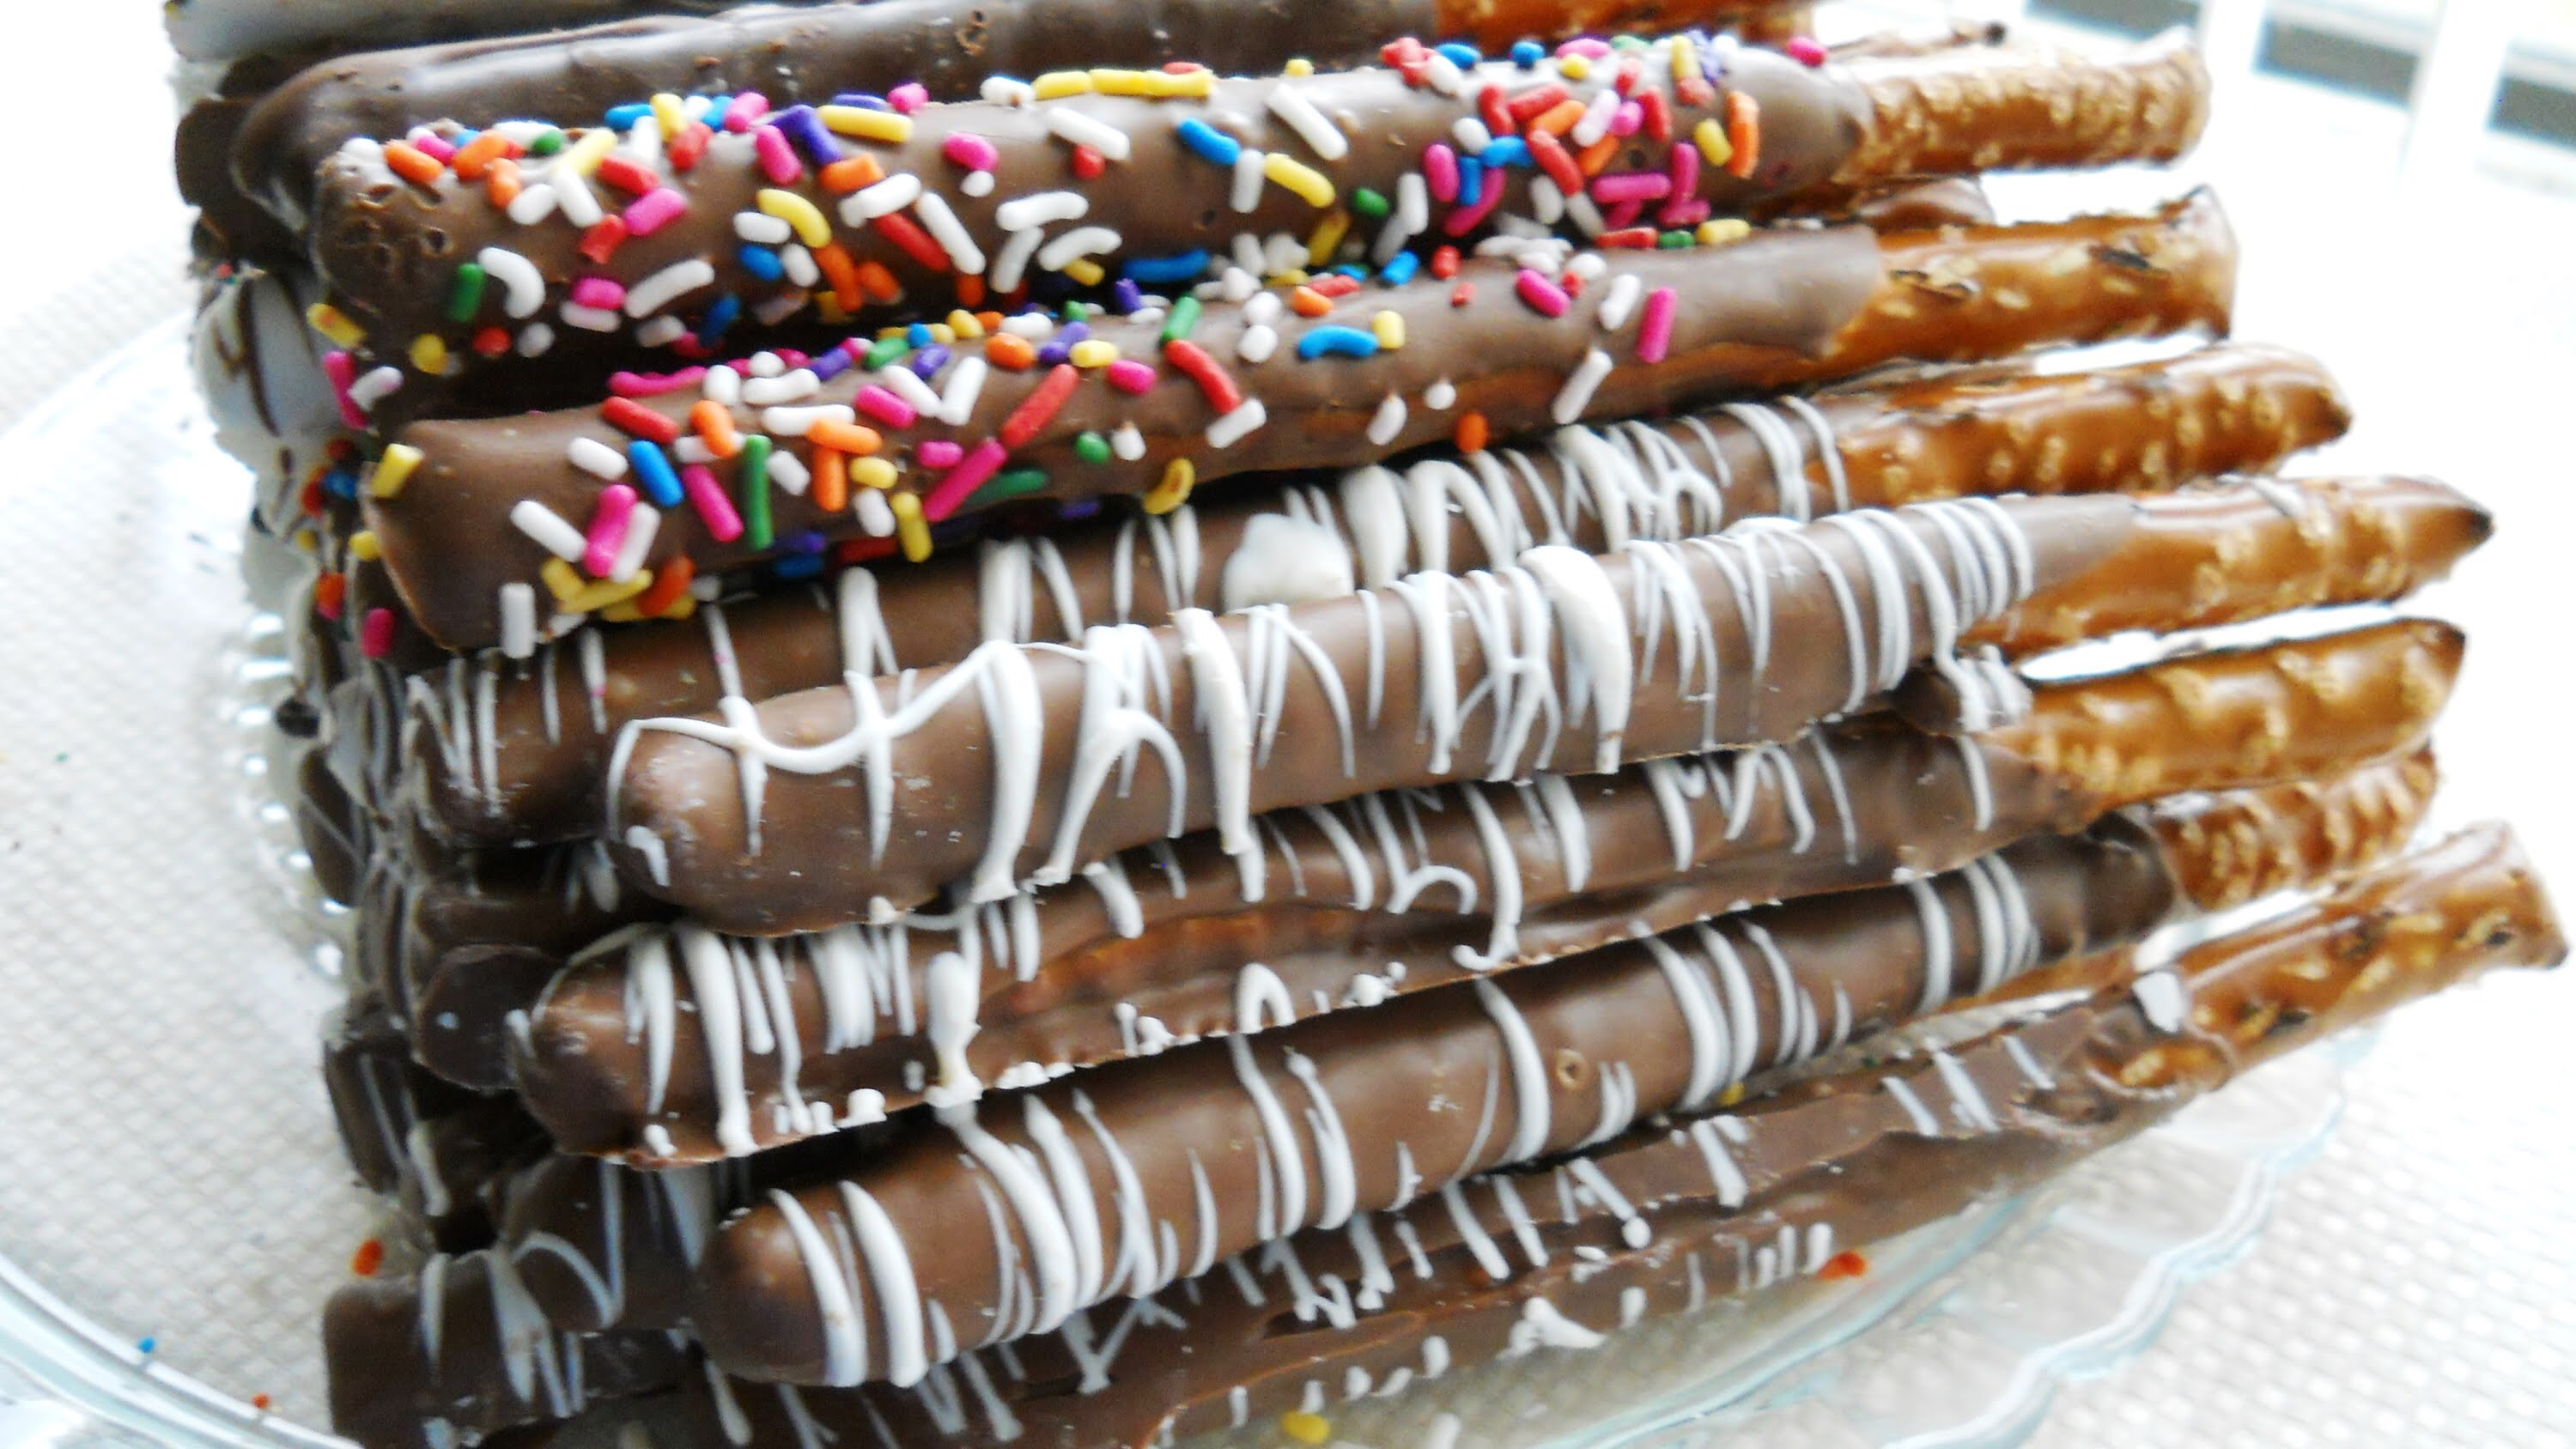 Chocolate Covered Pretzels Image